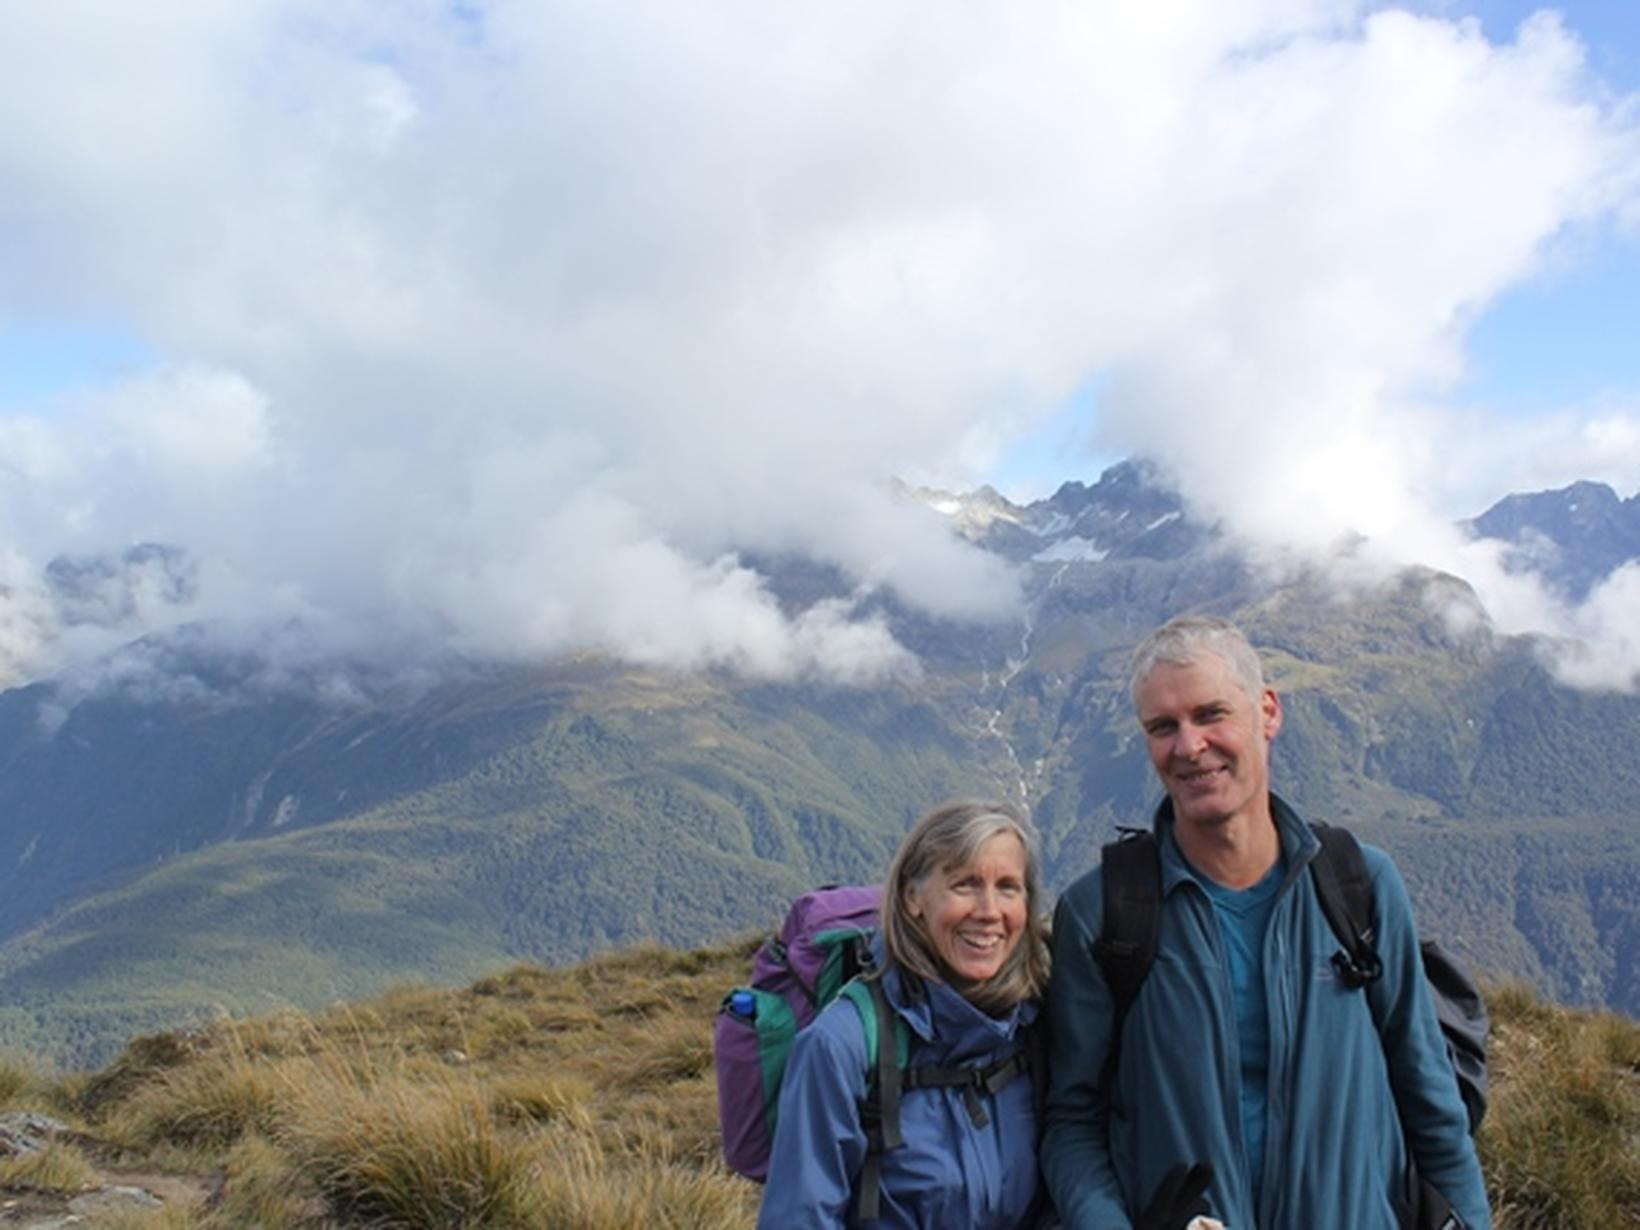 Vicki & Roger from Auckland, New Zealand